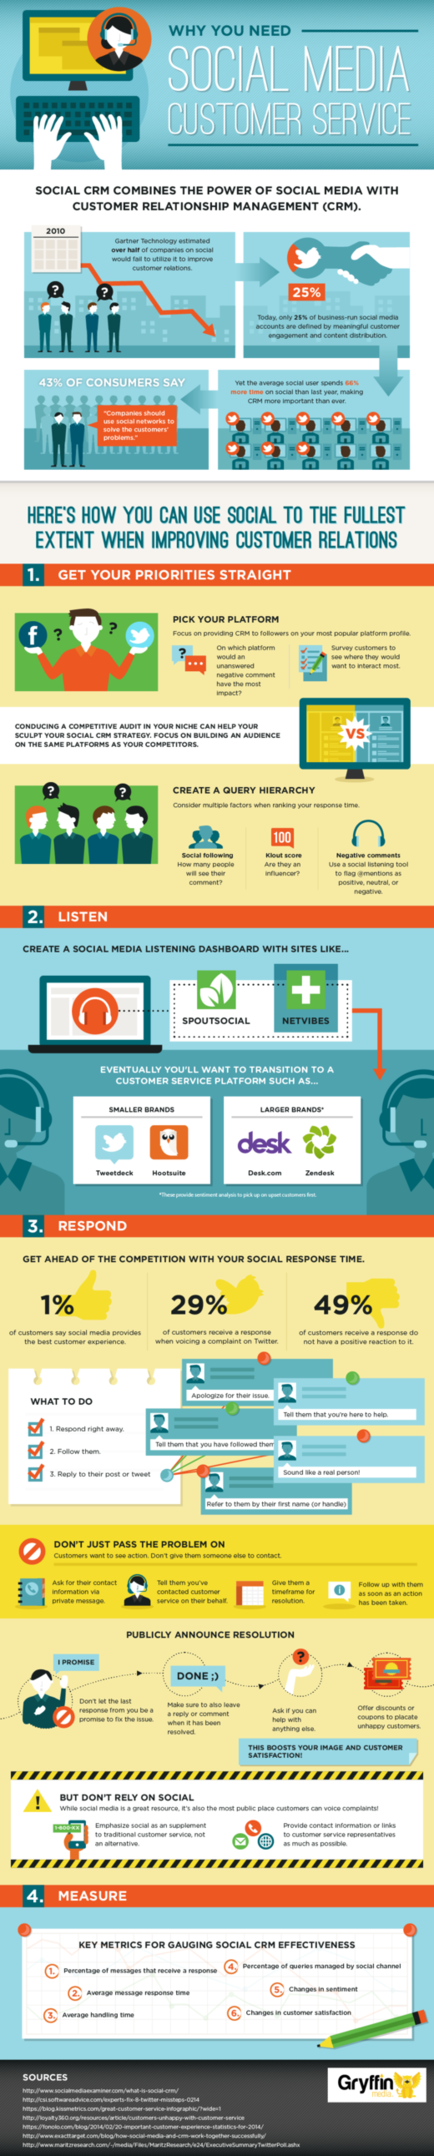 Why You Need Social Media Customer Service [Infographic]